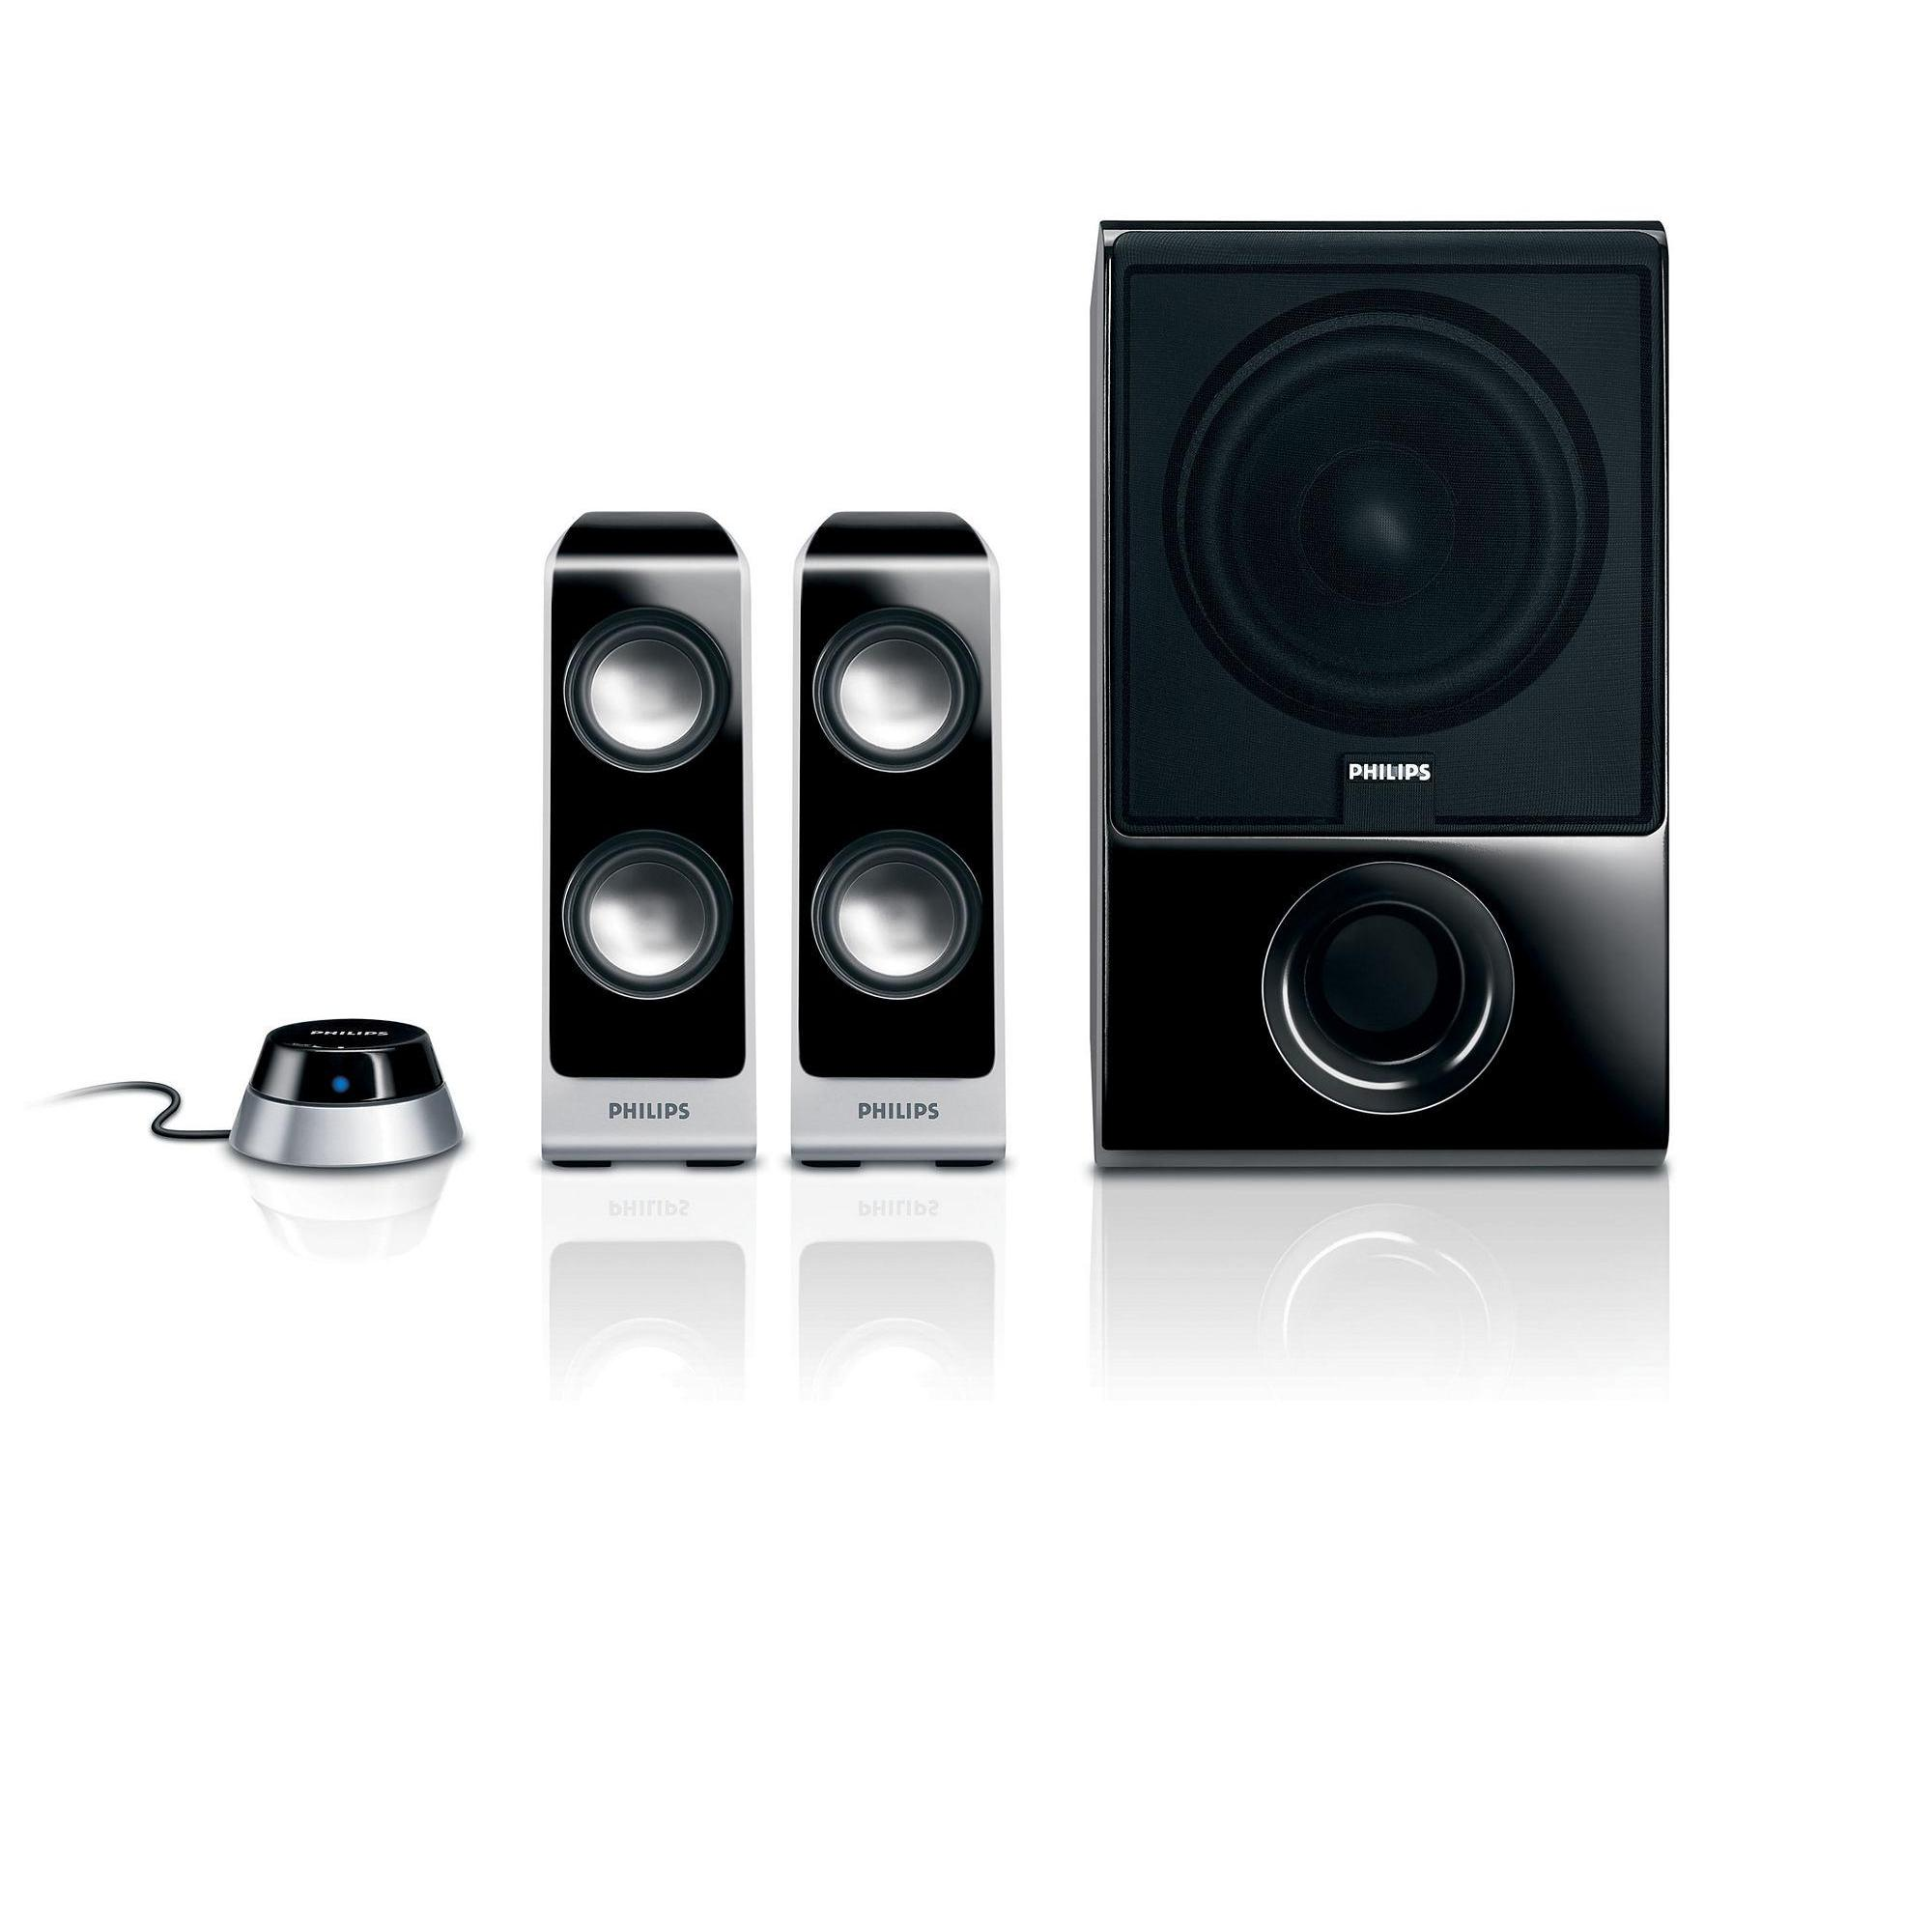 Philips Altavoces Multimedia - 2.1 Bass Reflex -100W - SPA7350/10